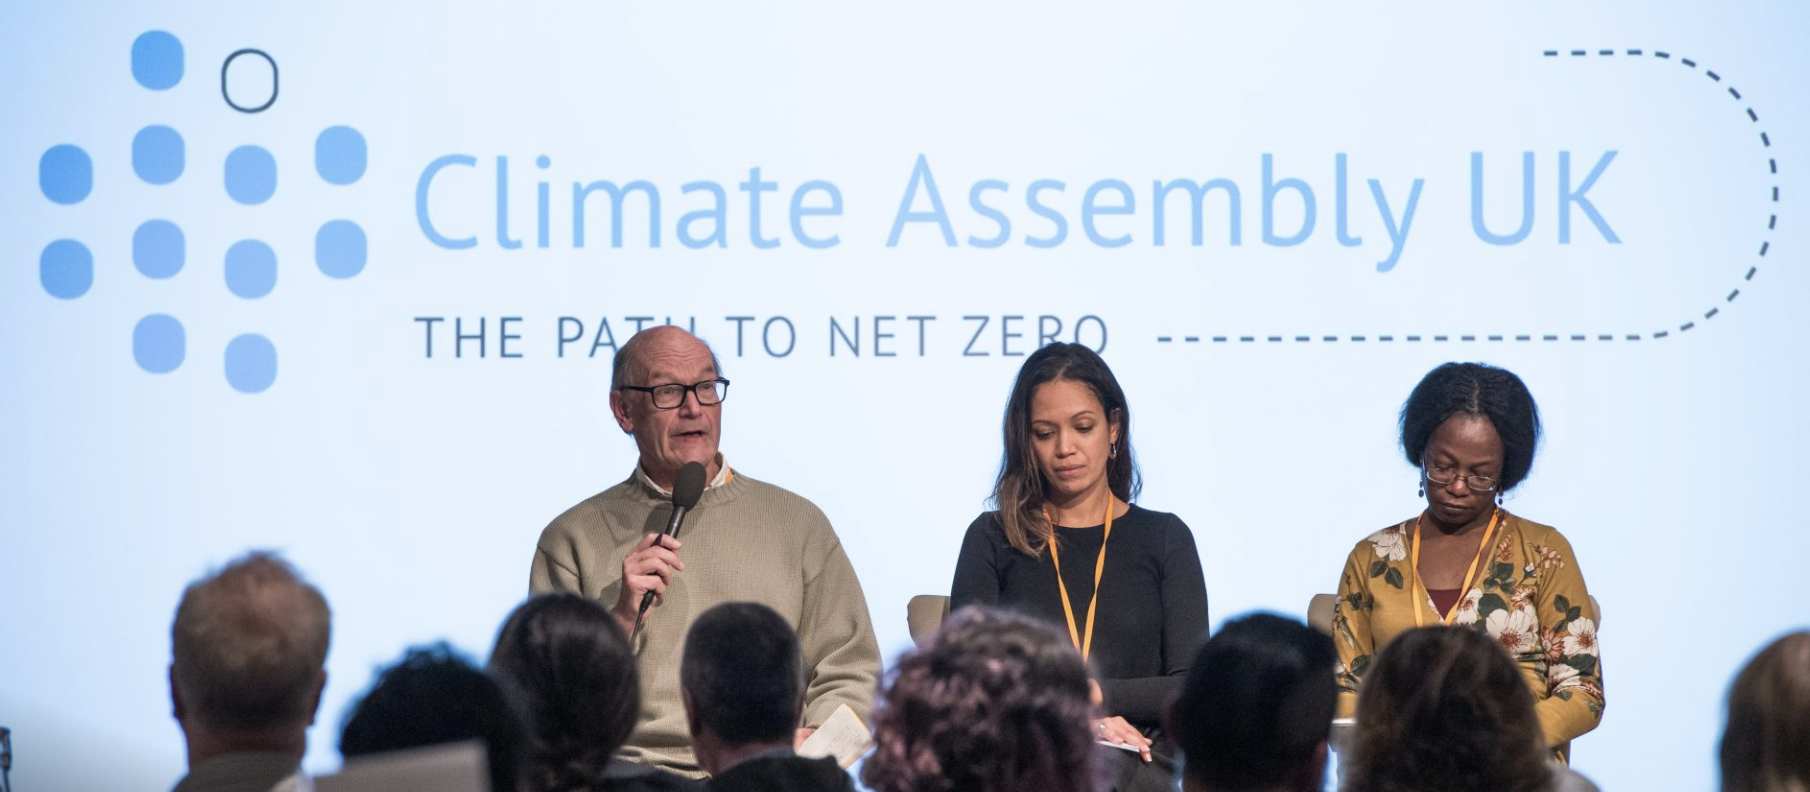 Assembly members put expert speakers through their paces at first weekend of Climate Assembly UK